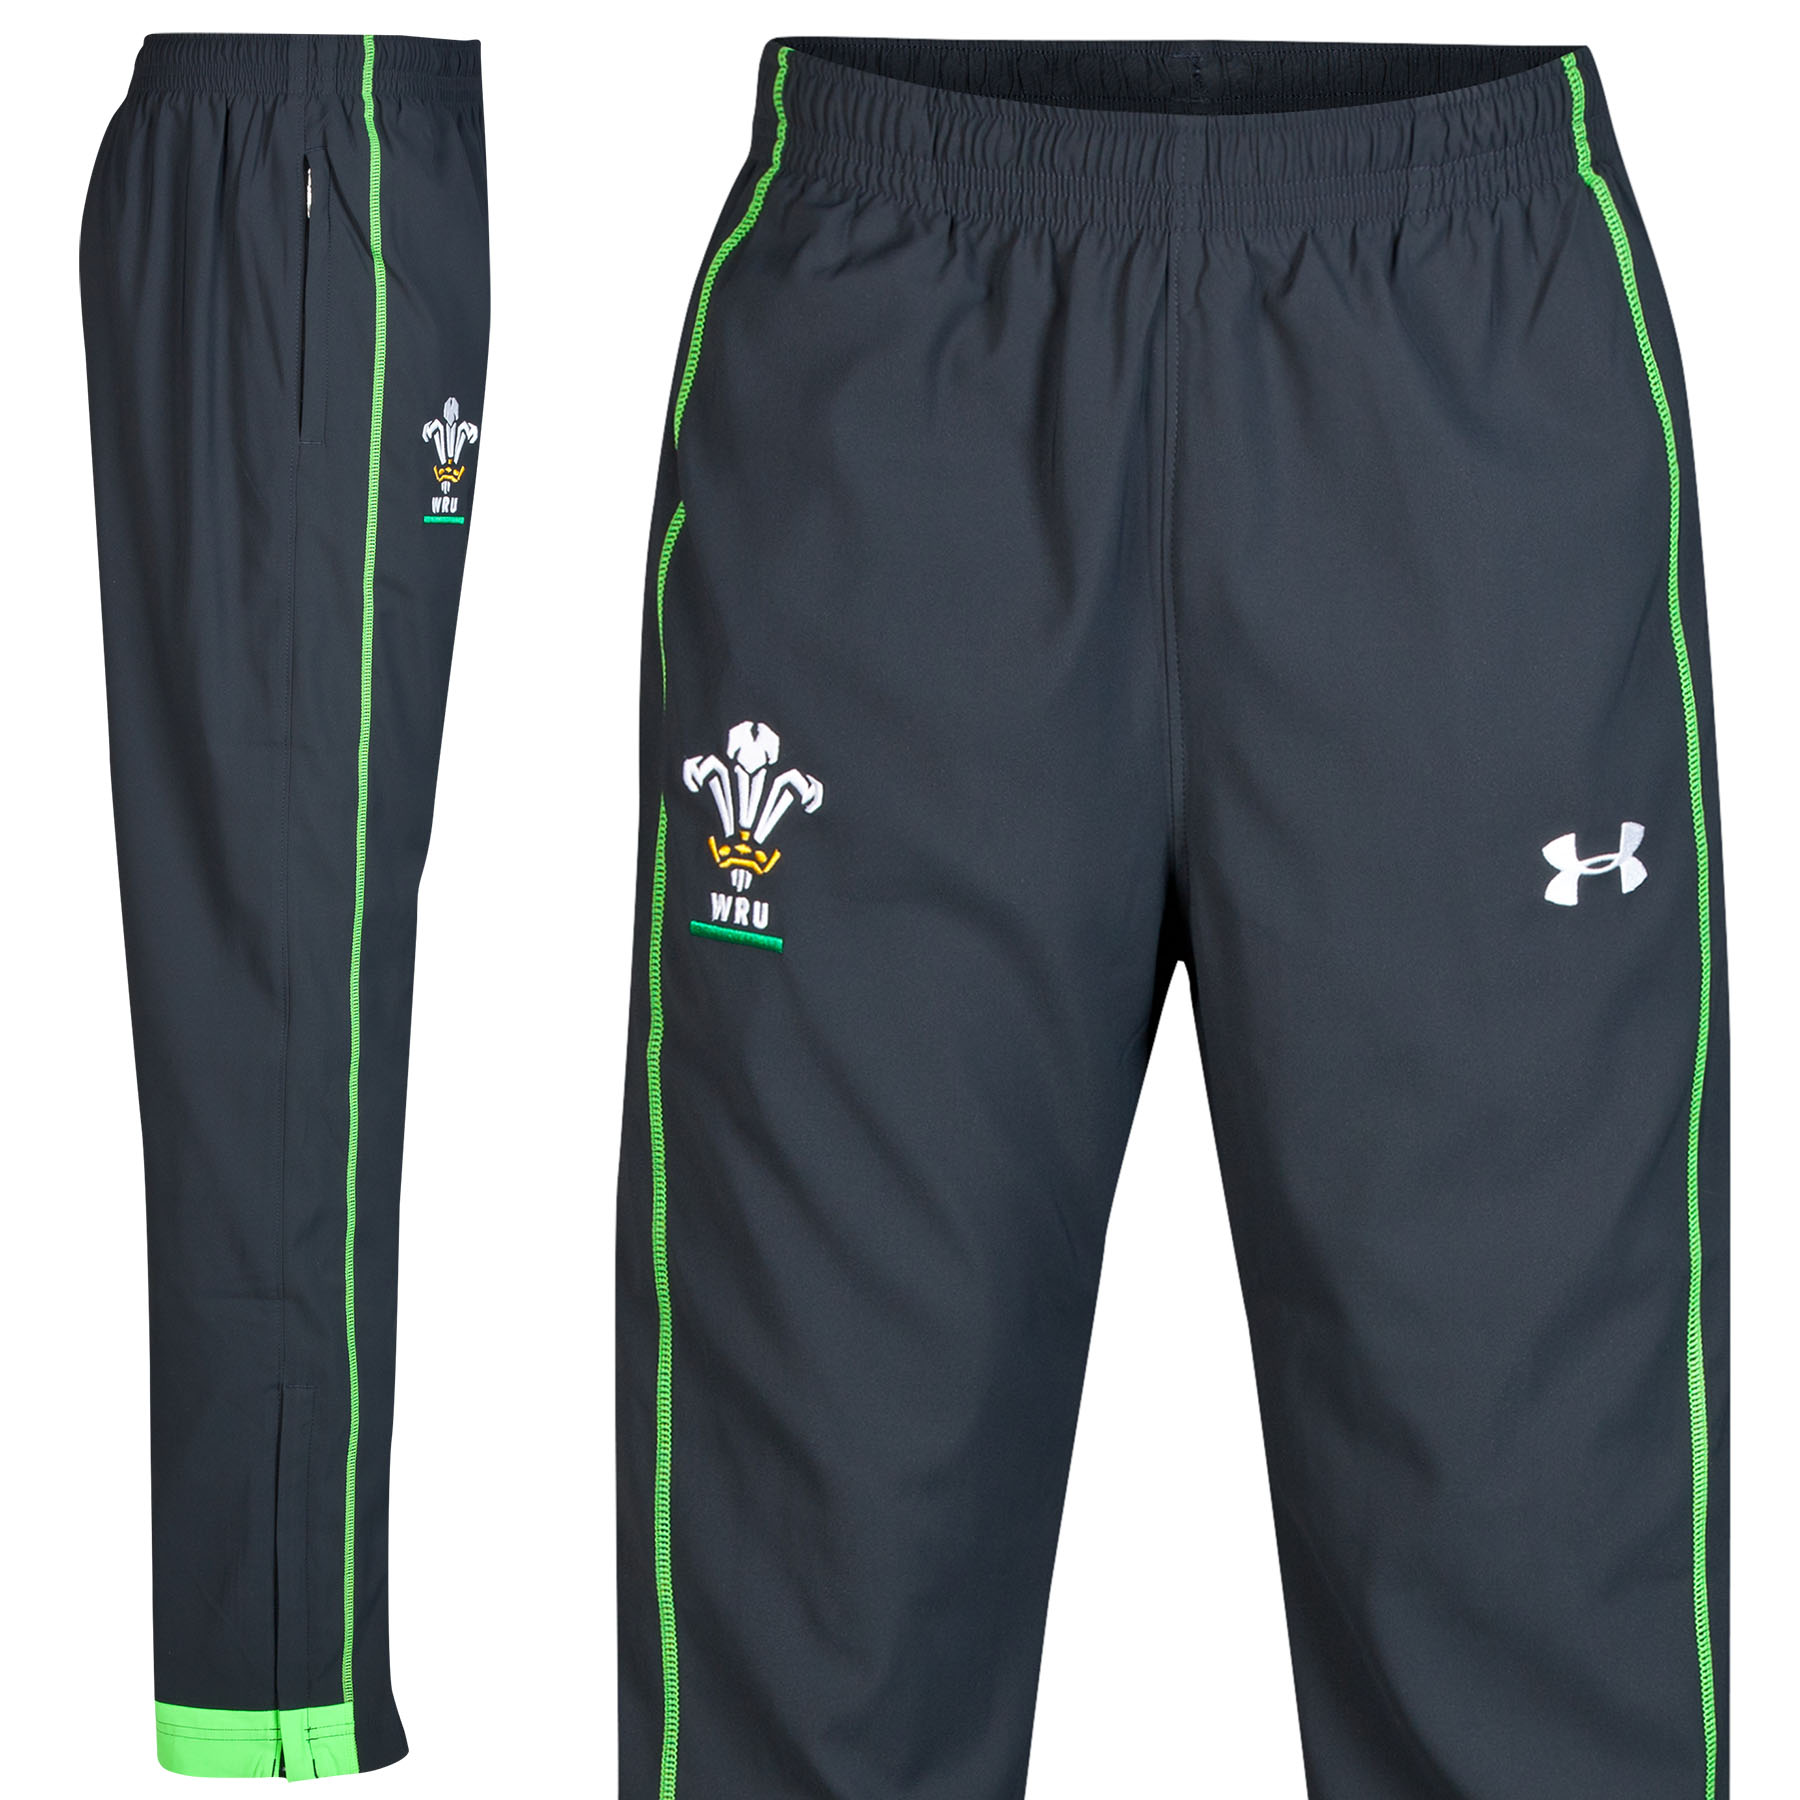 Wales Rugby Union Supporters Training Pant 2014/15 Black